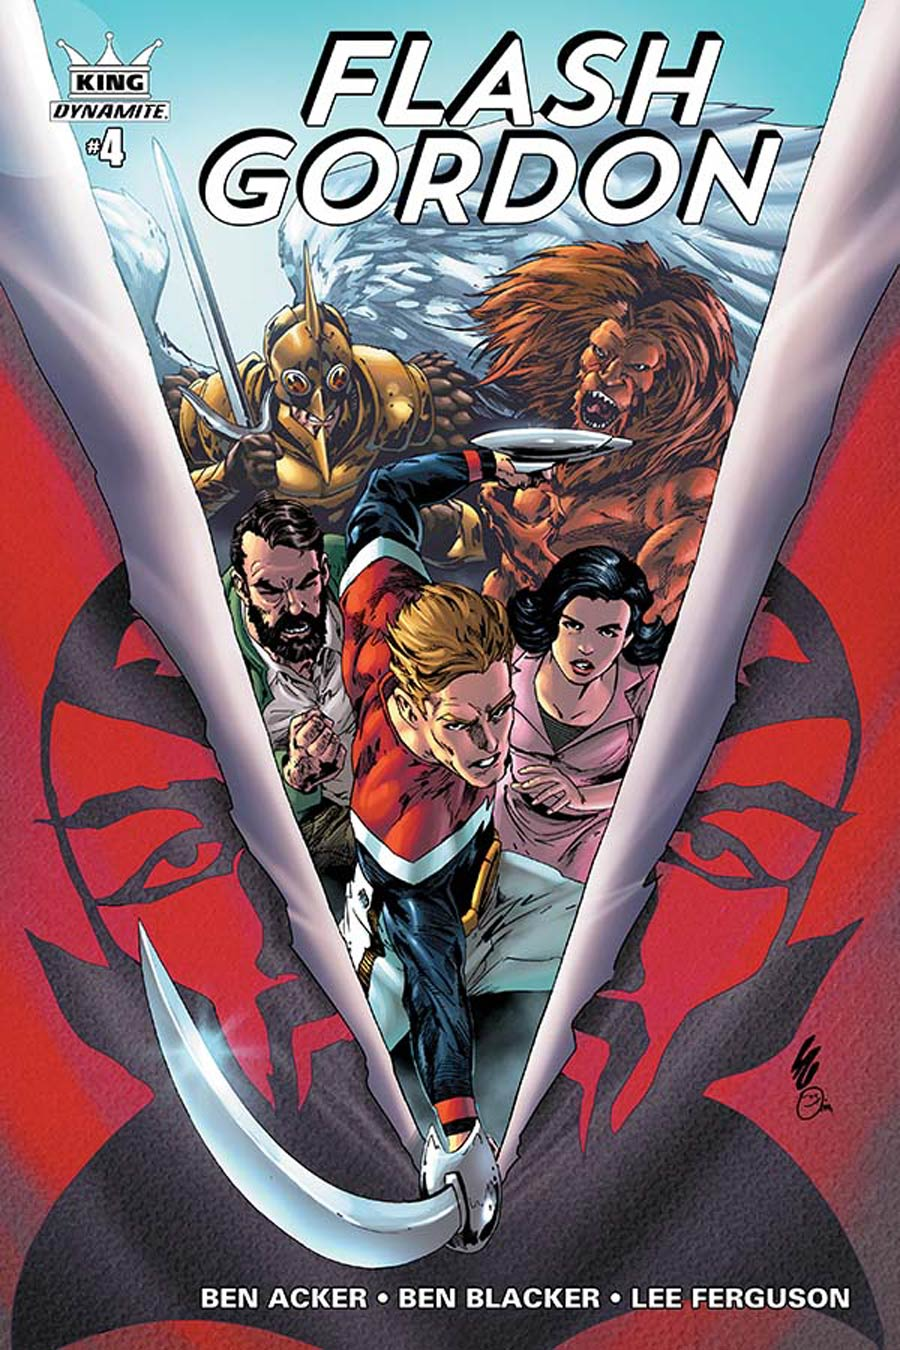 King Flash Gordon #4 Cover A Regular Jonathan Lau Cover